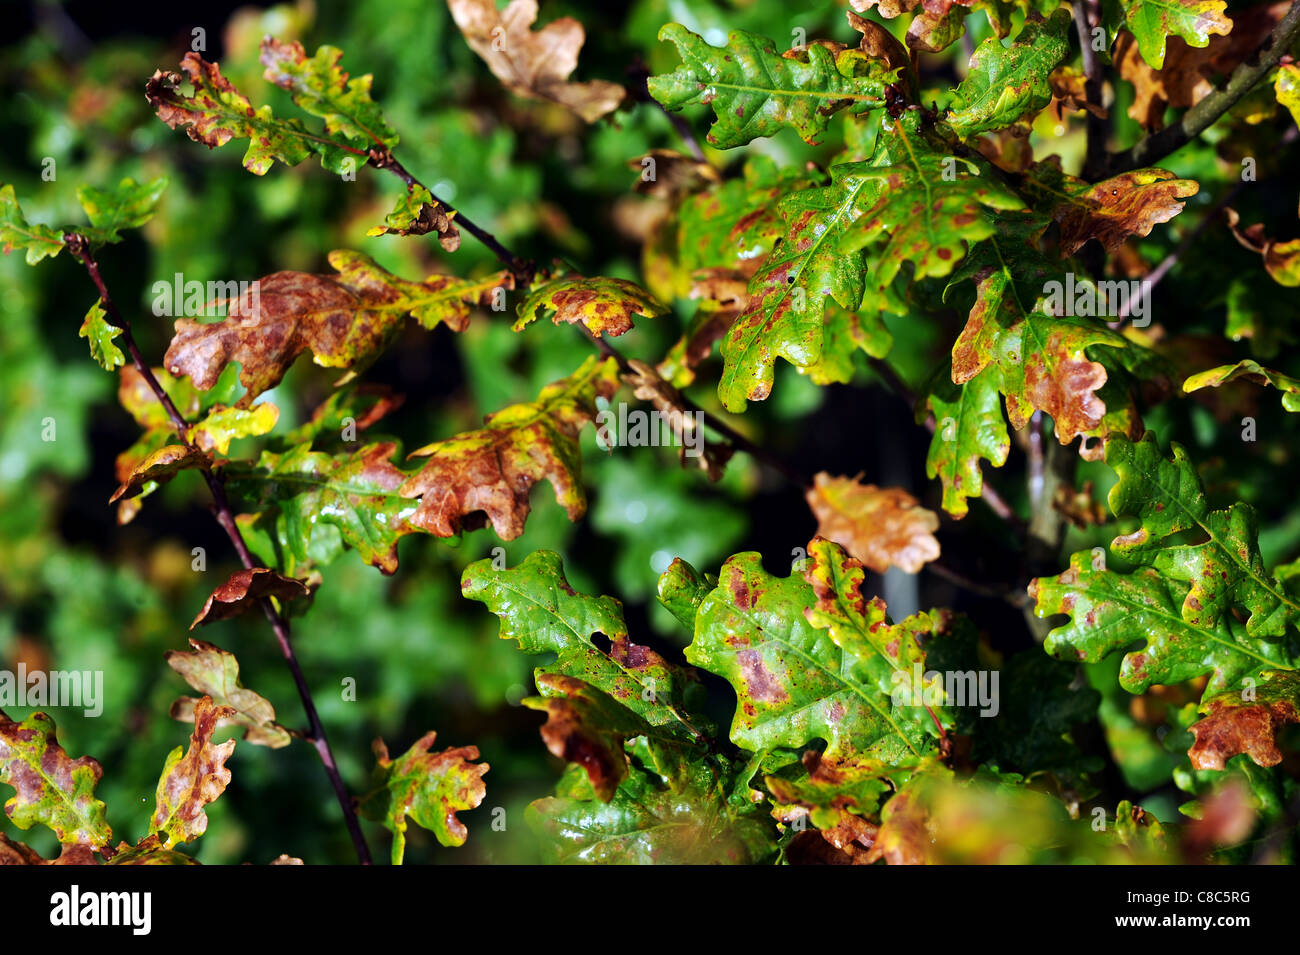 Autumn leaves and conkers at Leverhulme Park, Bolton, Lancashire, England. Picture by Paul Heyes, Tuesday October - Stock Image